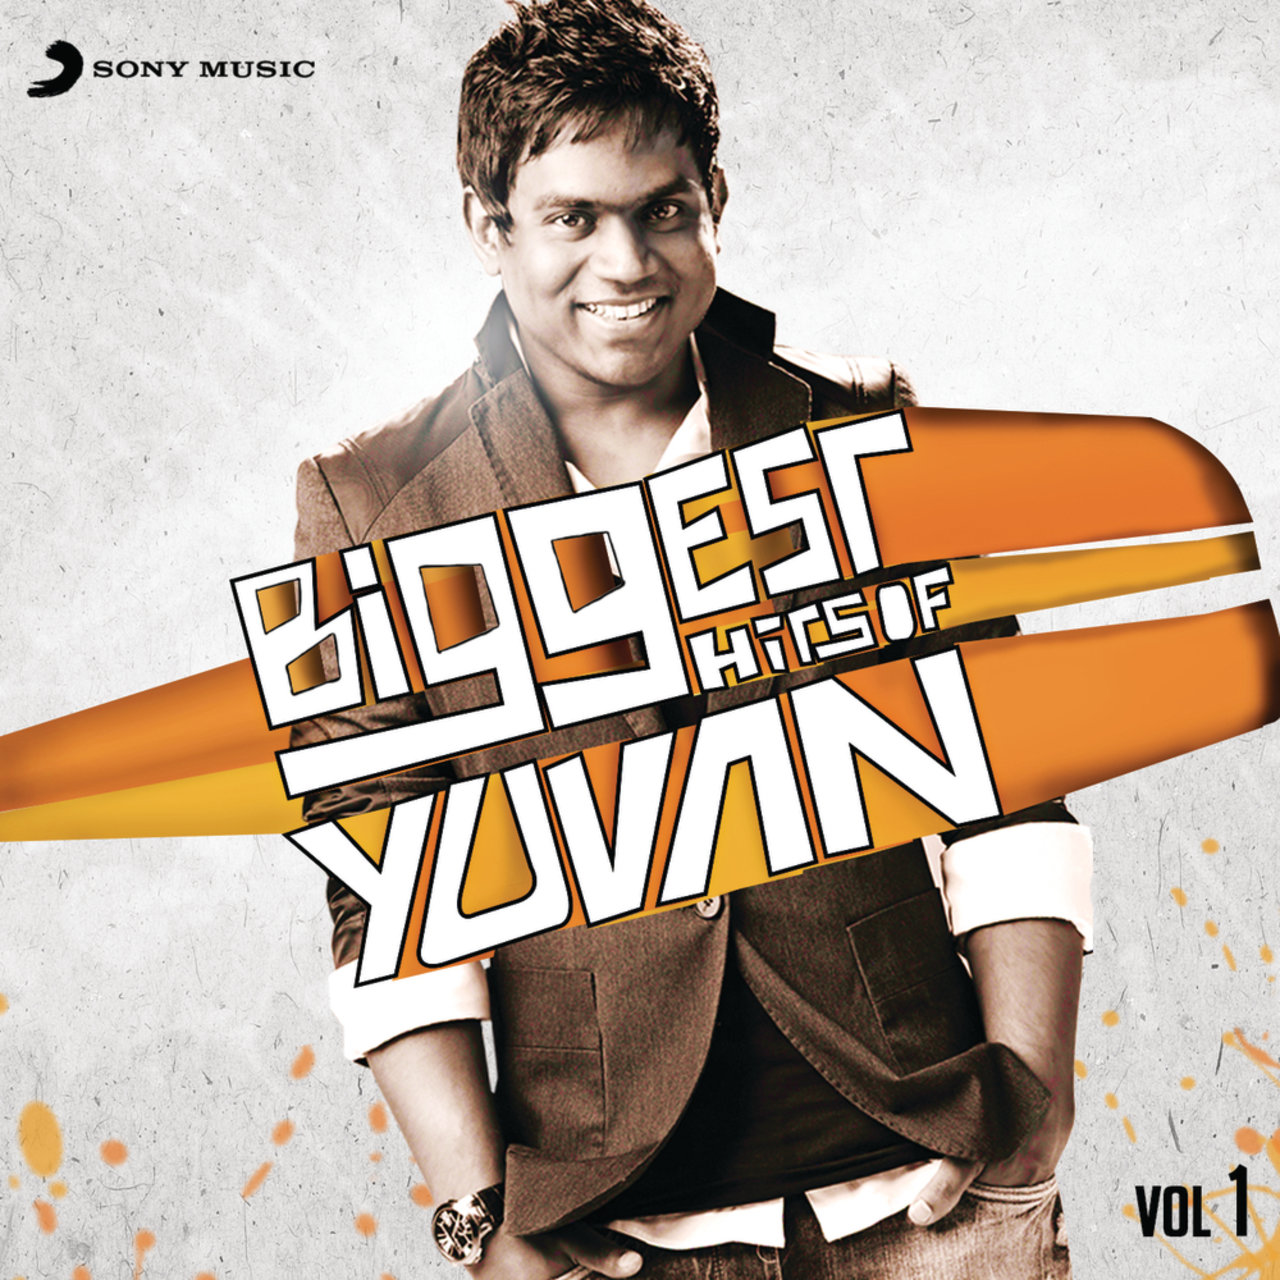 Biggest Hits of Yuvan, Vol. 1